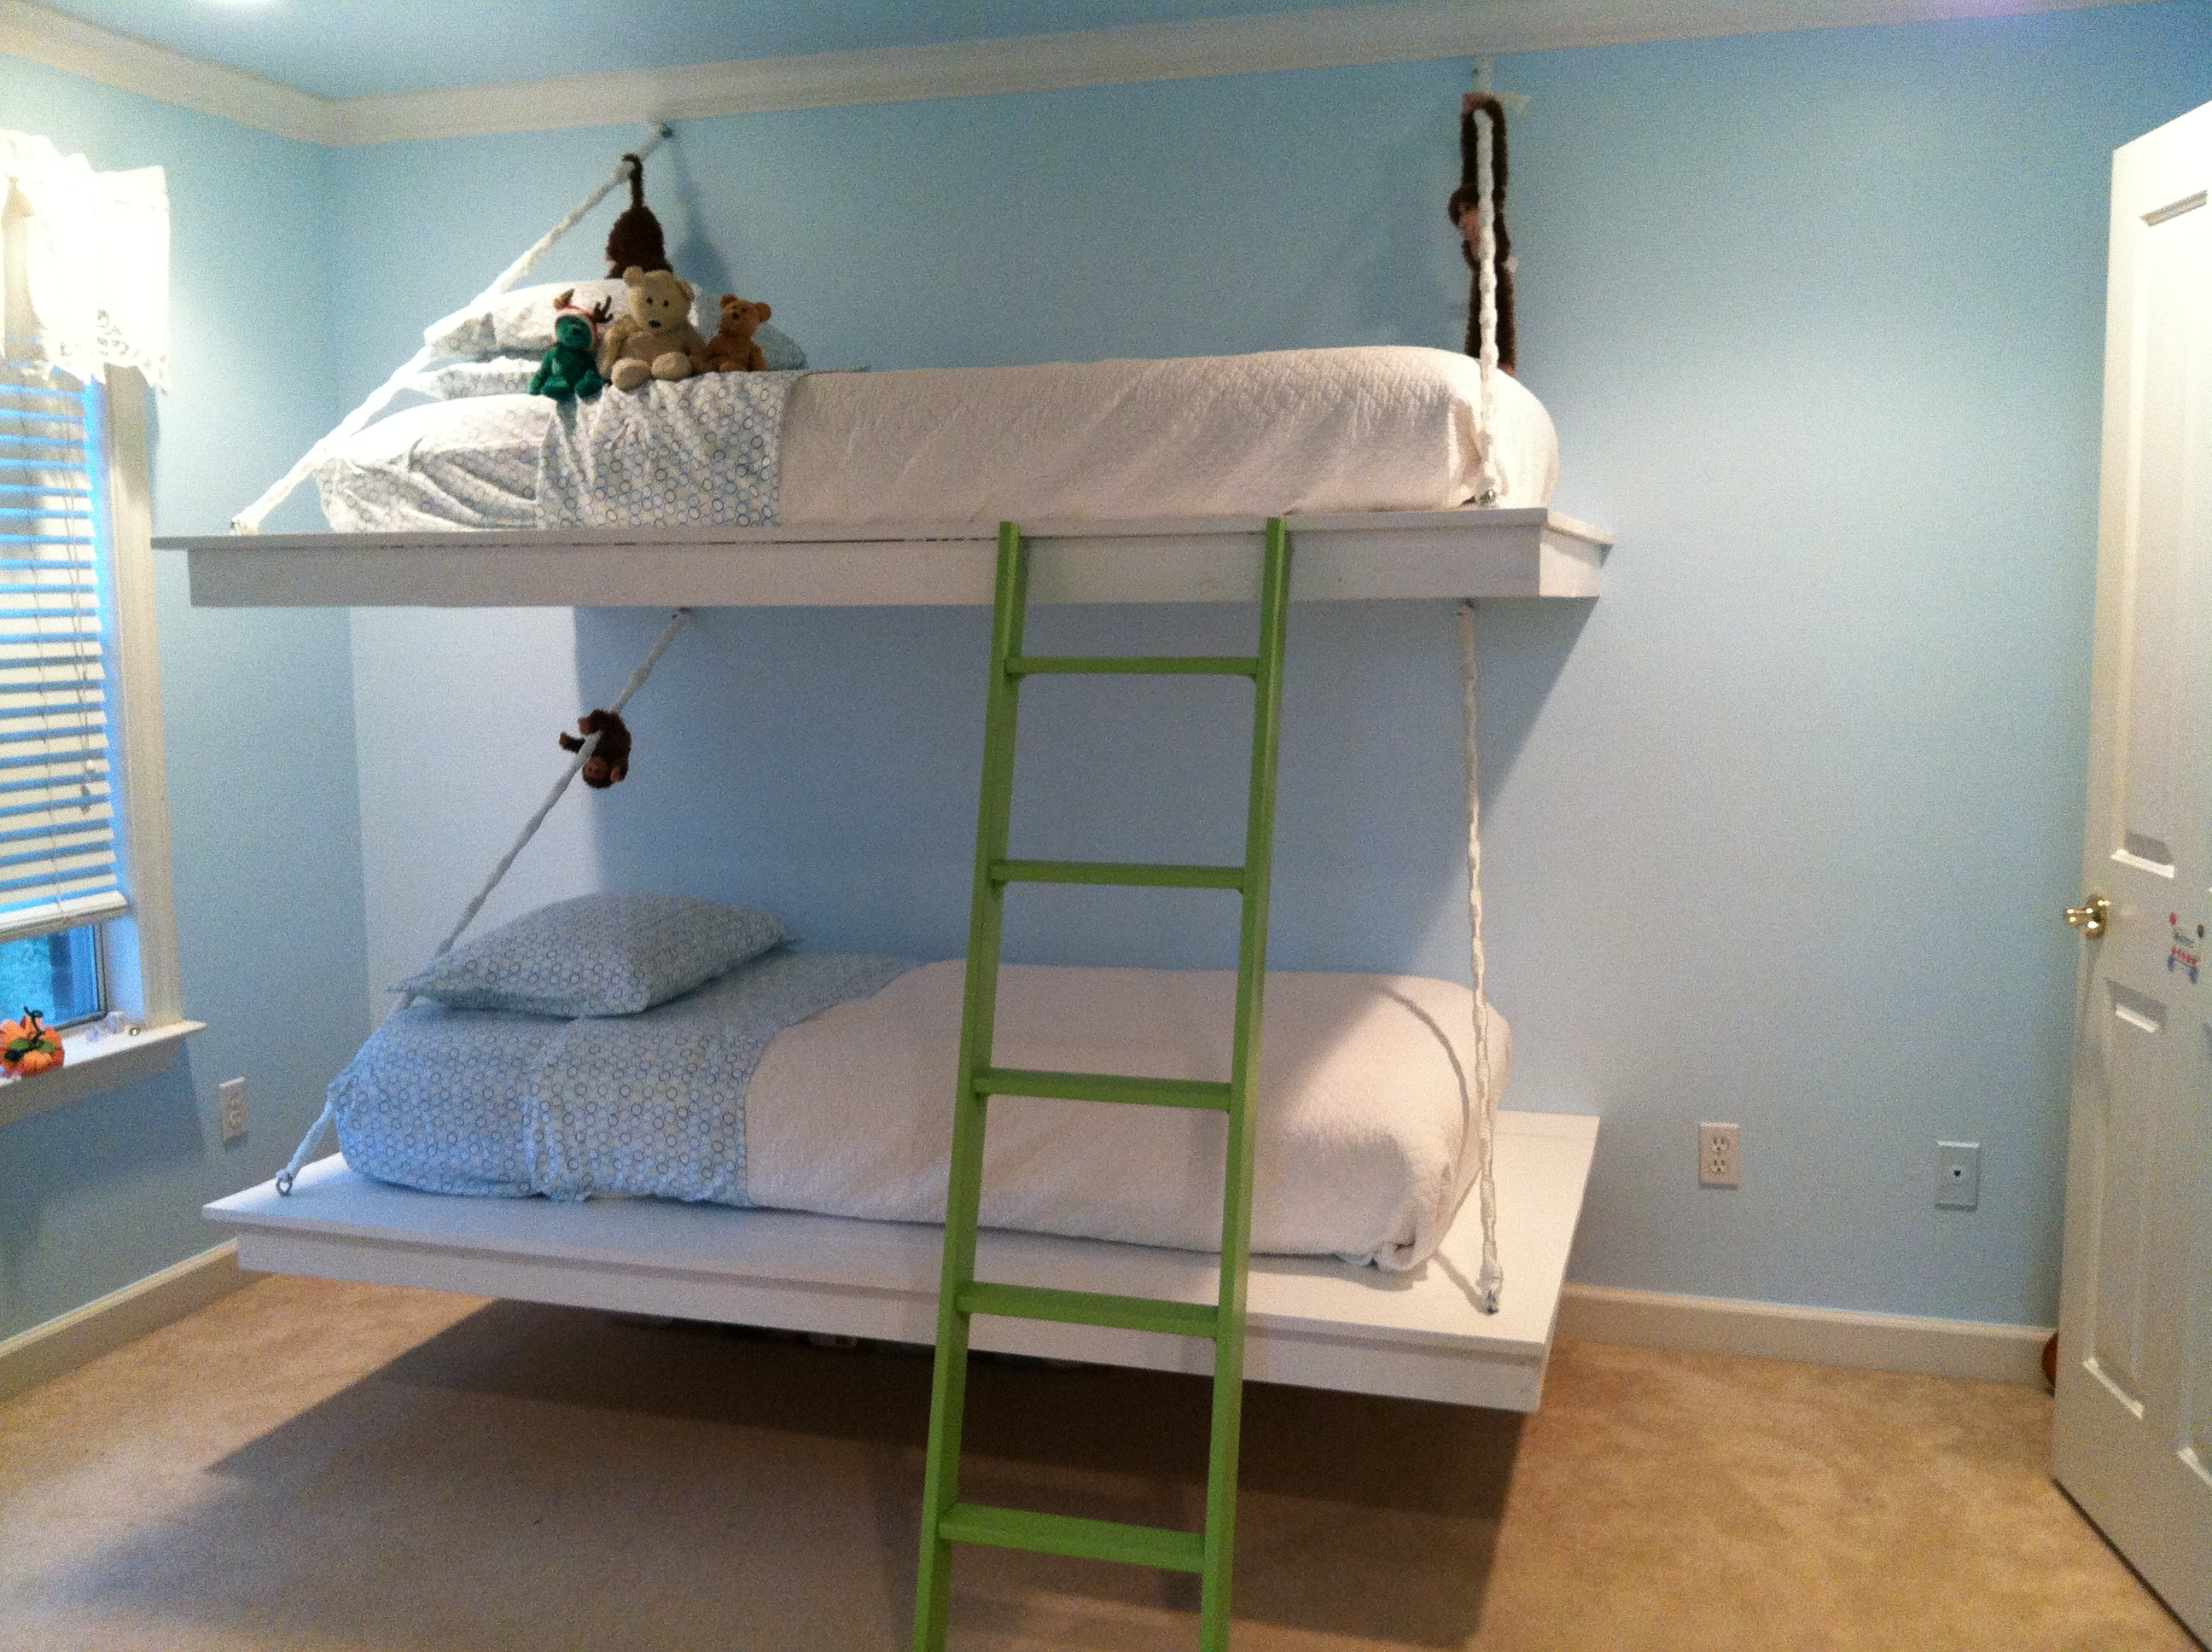 Hanging Bef Of Ana White Bunk Beds Diy Projects Trends Acnn Decor